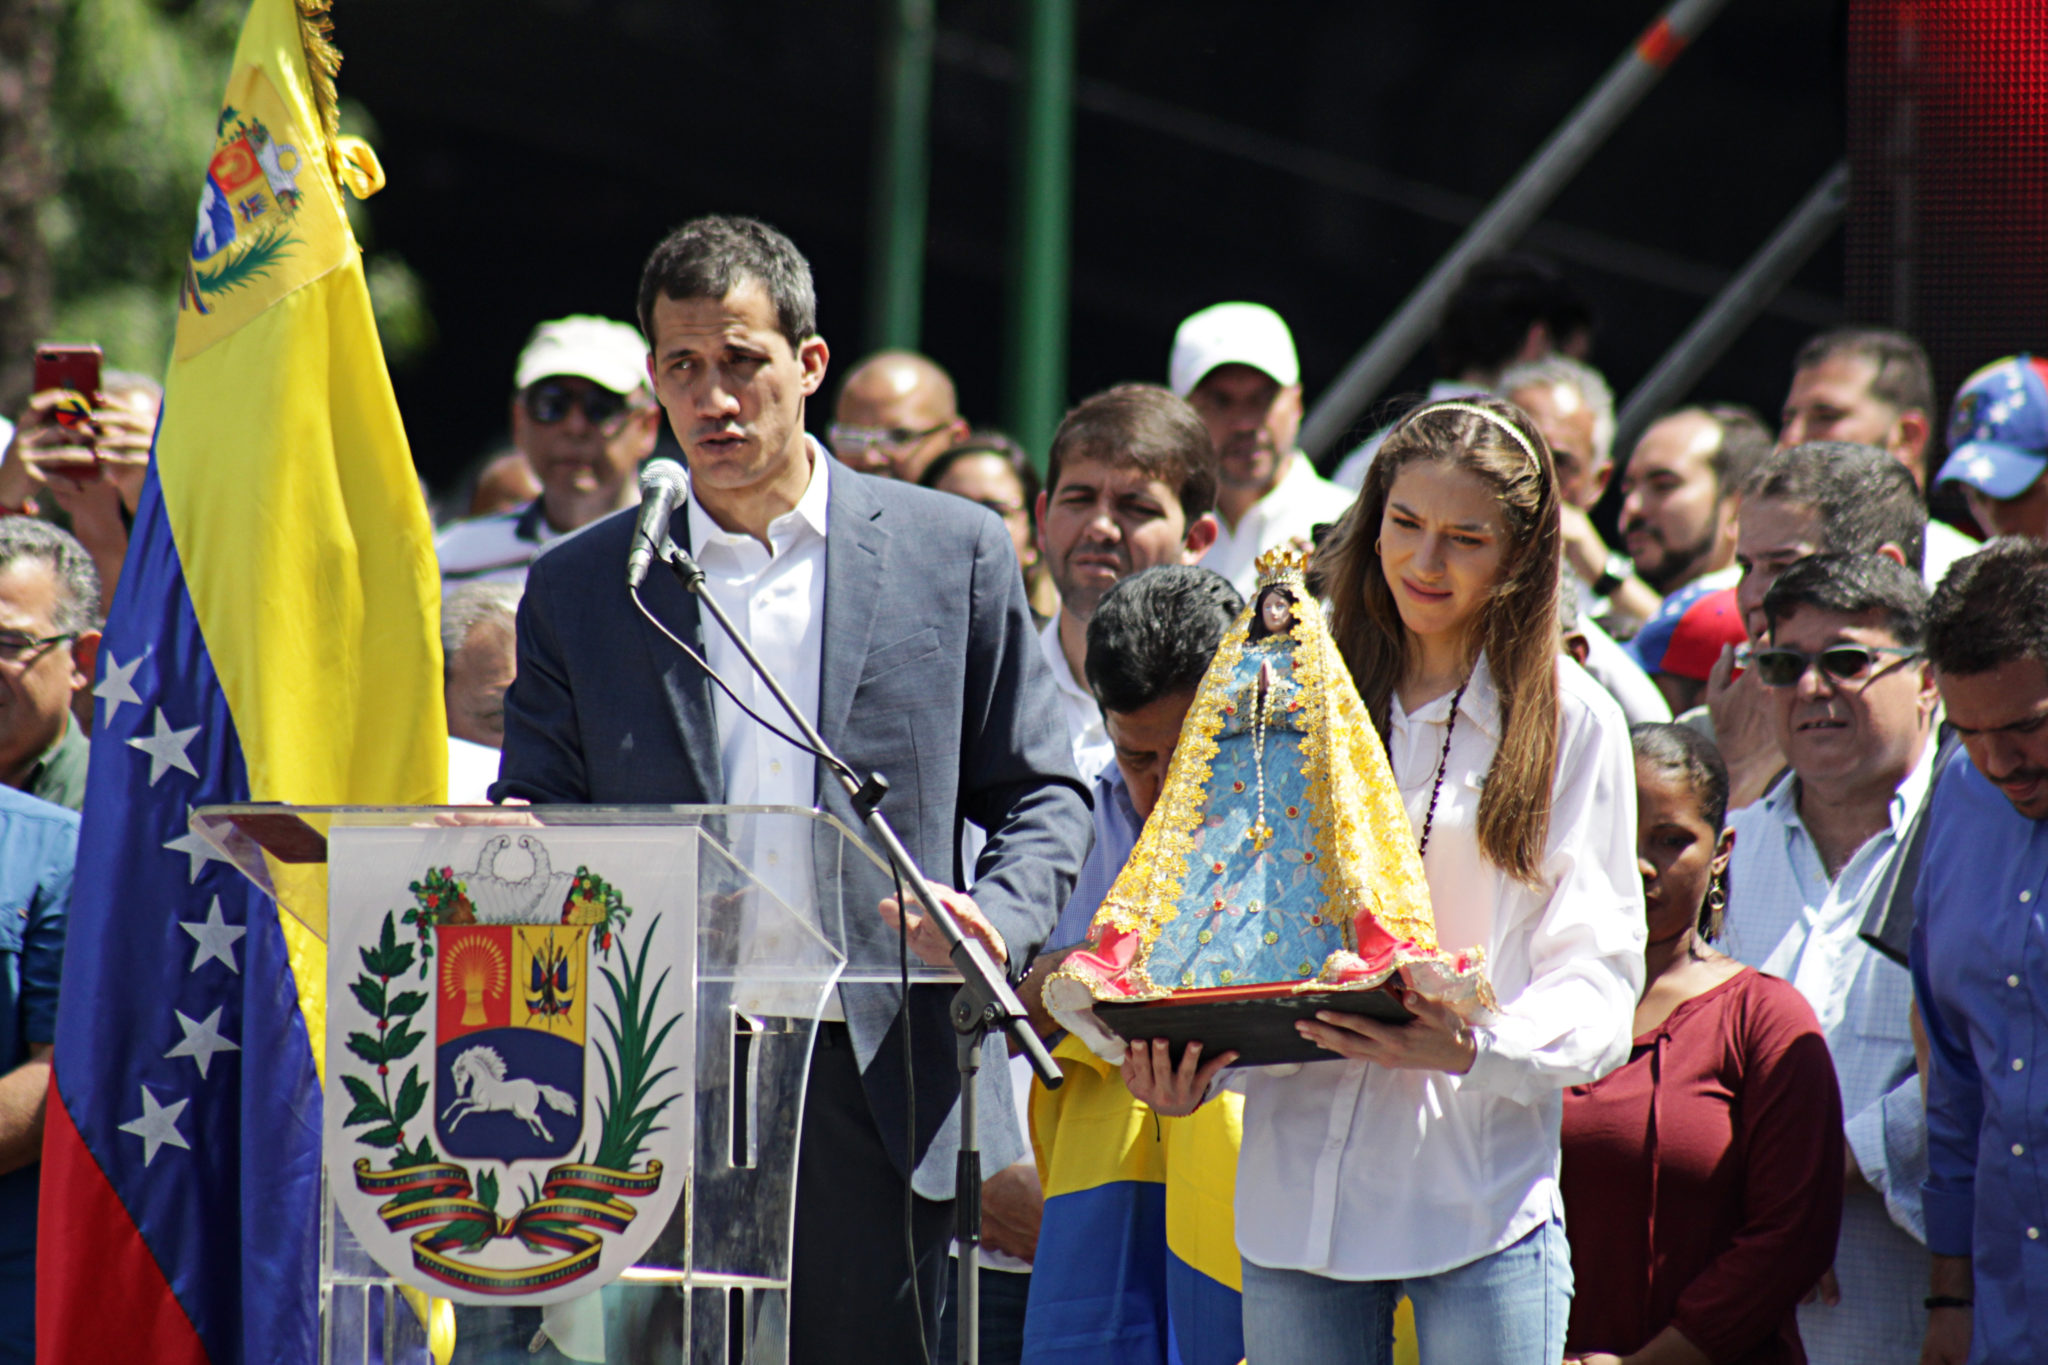 Guaidó's progress stagnates after six months despite international support